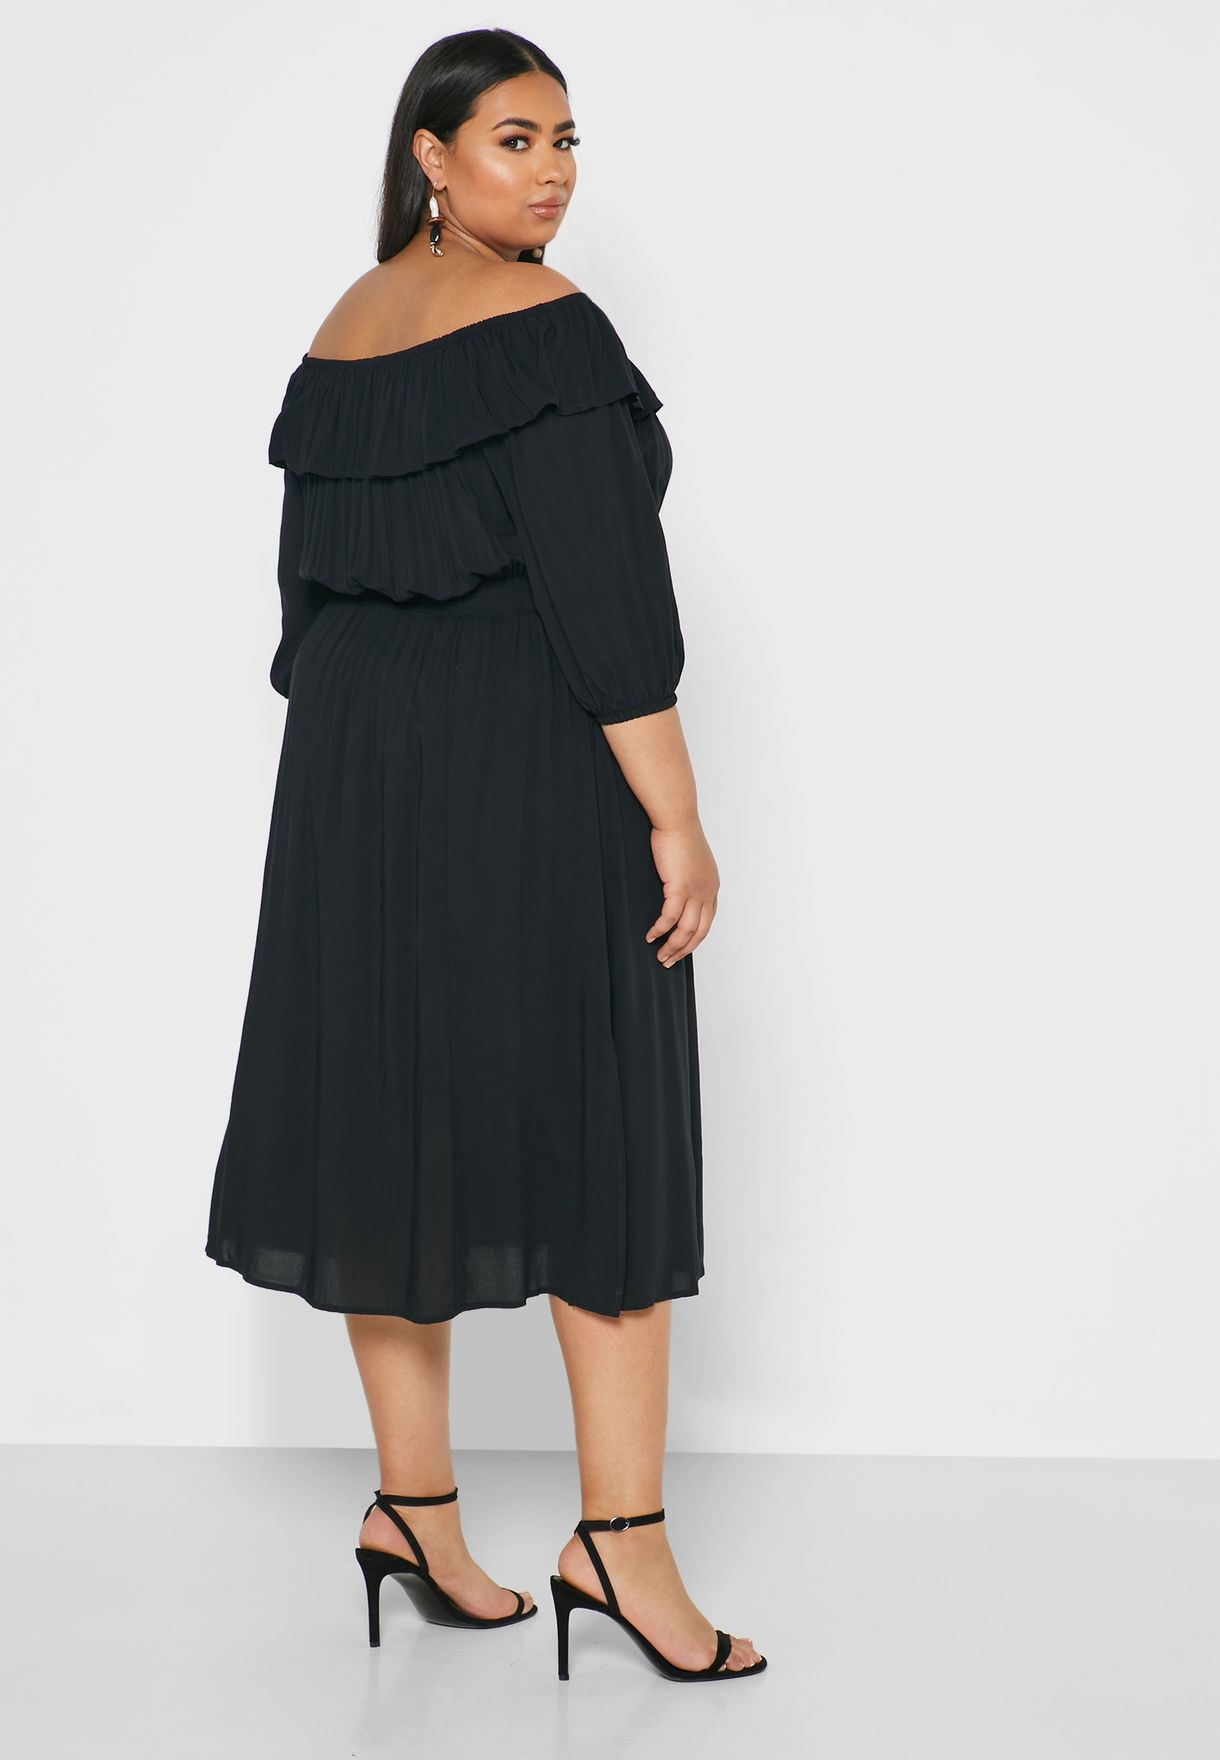 Ruffle Detail Off Shoulder Dress